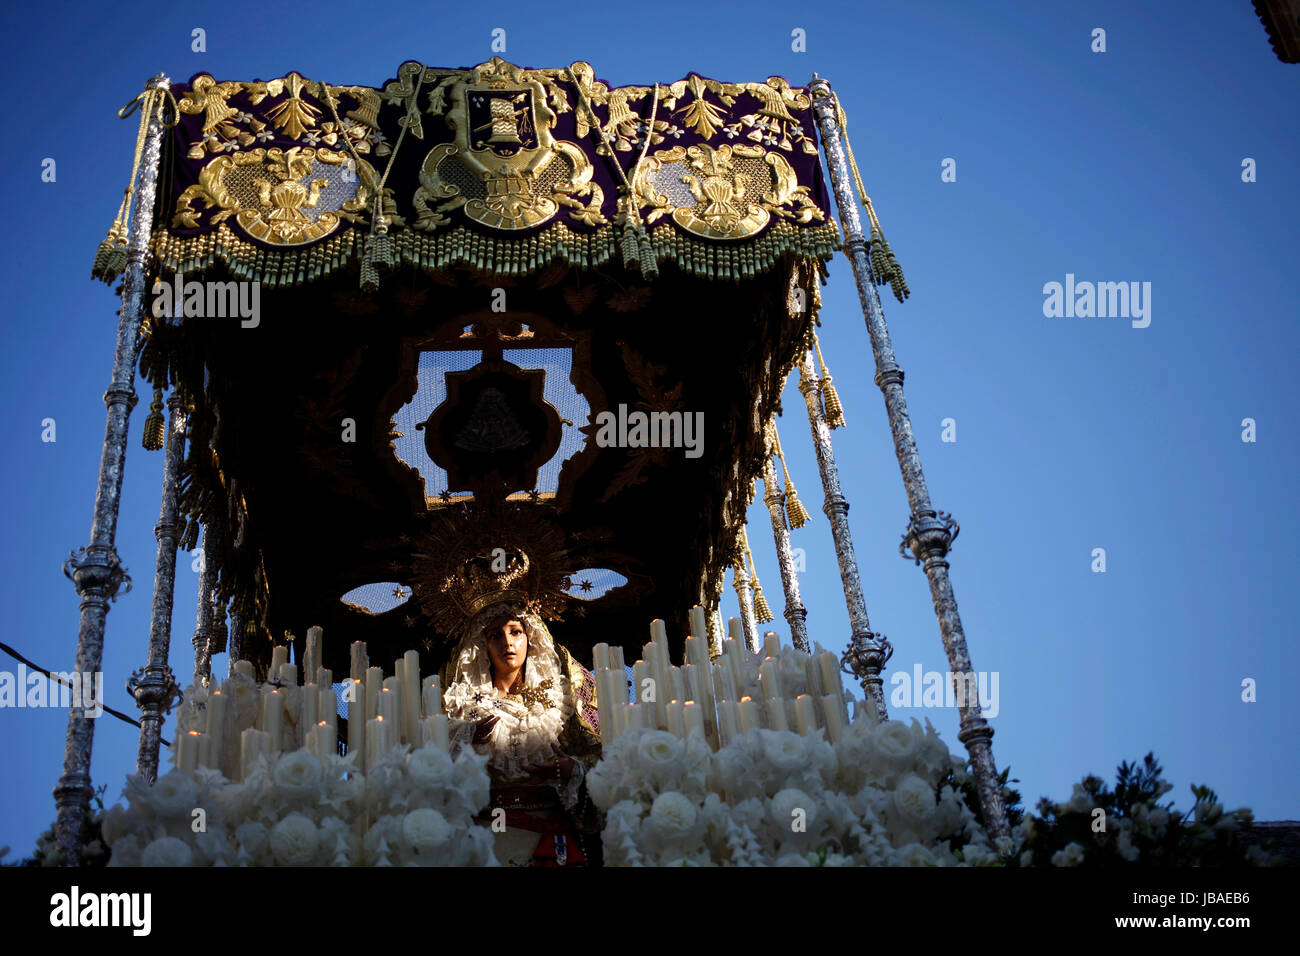 An image of Nuestra Señora de las Lágrimas (Our Lady of Tears) is displayed under a pallium during Easter - Stock Image